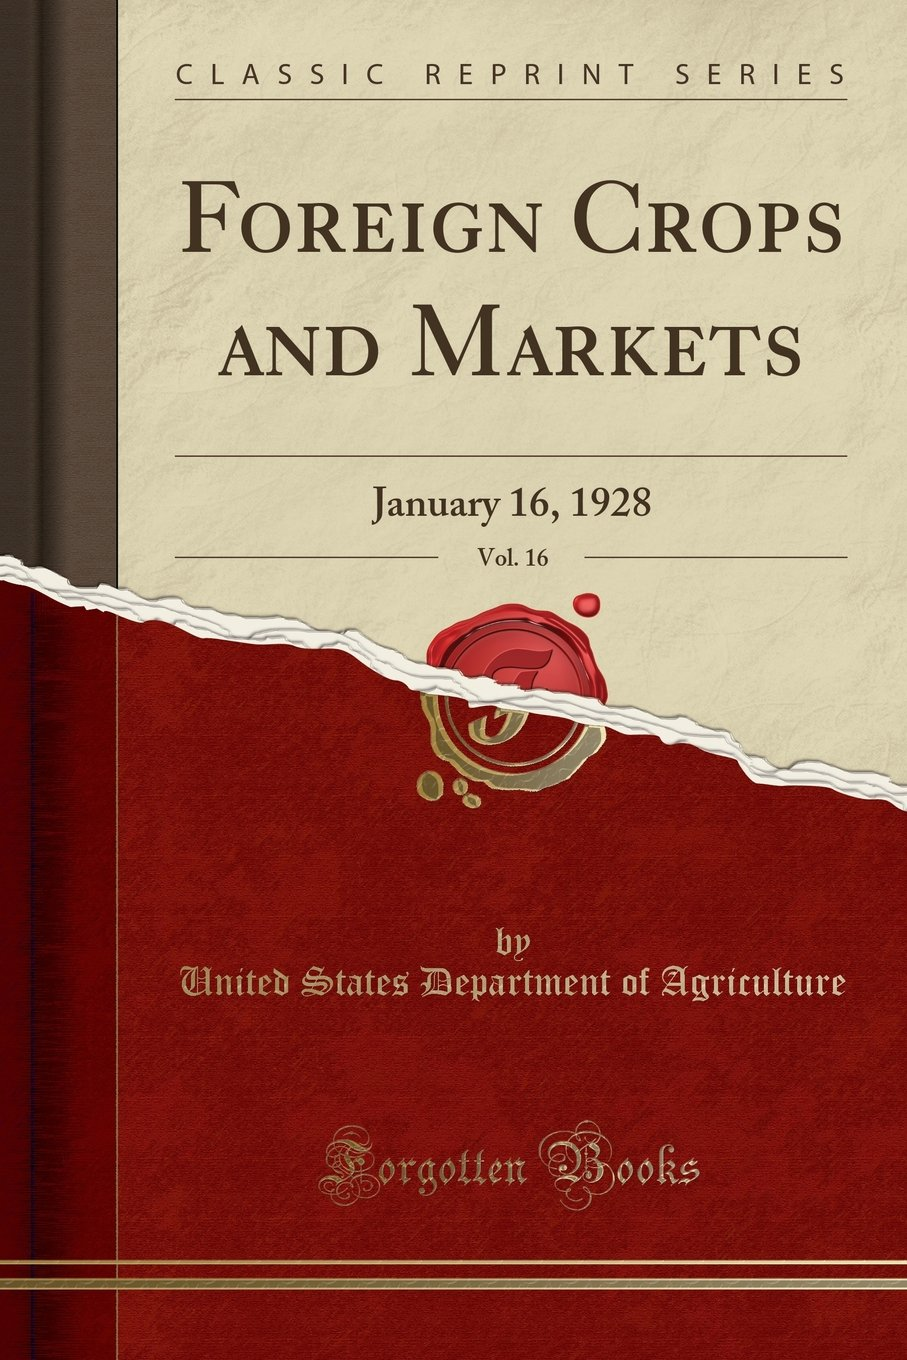 Foreign Crops and Markets, Vol. 16: January 16, 1928 (Classic Reprint) ebook